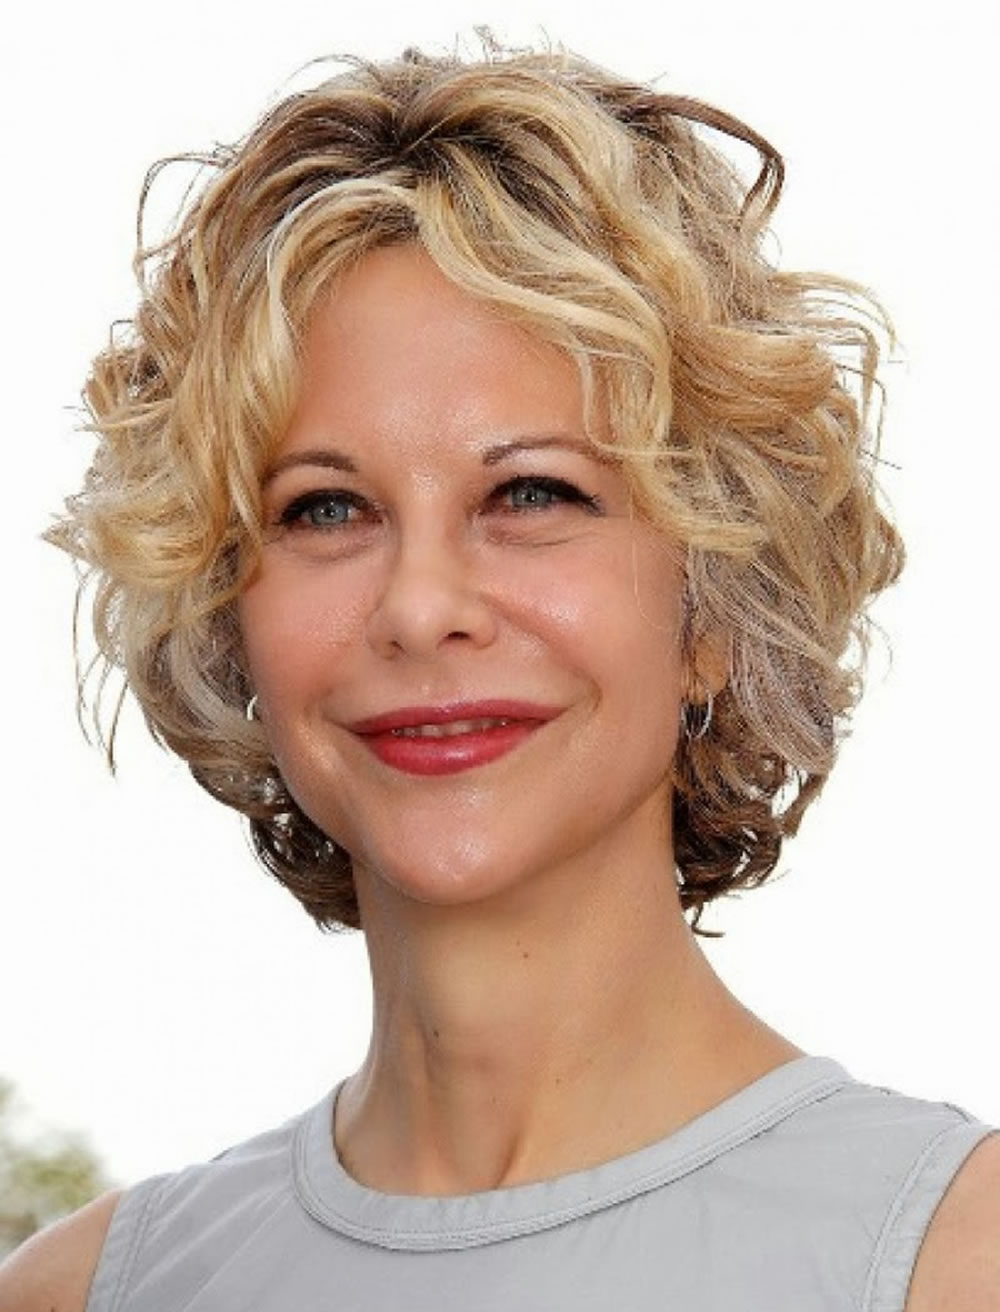 Curly Short Hairstyles for Older Women Over 50 – Best Short Haircuts 2018-2019